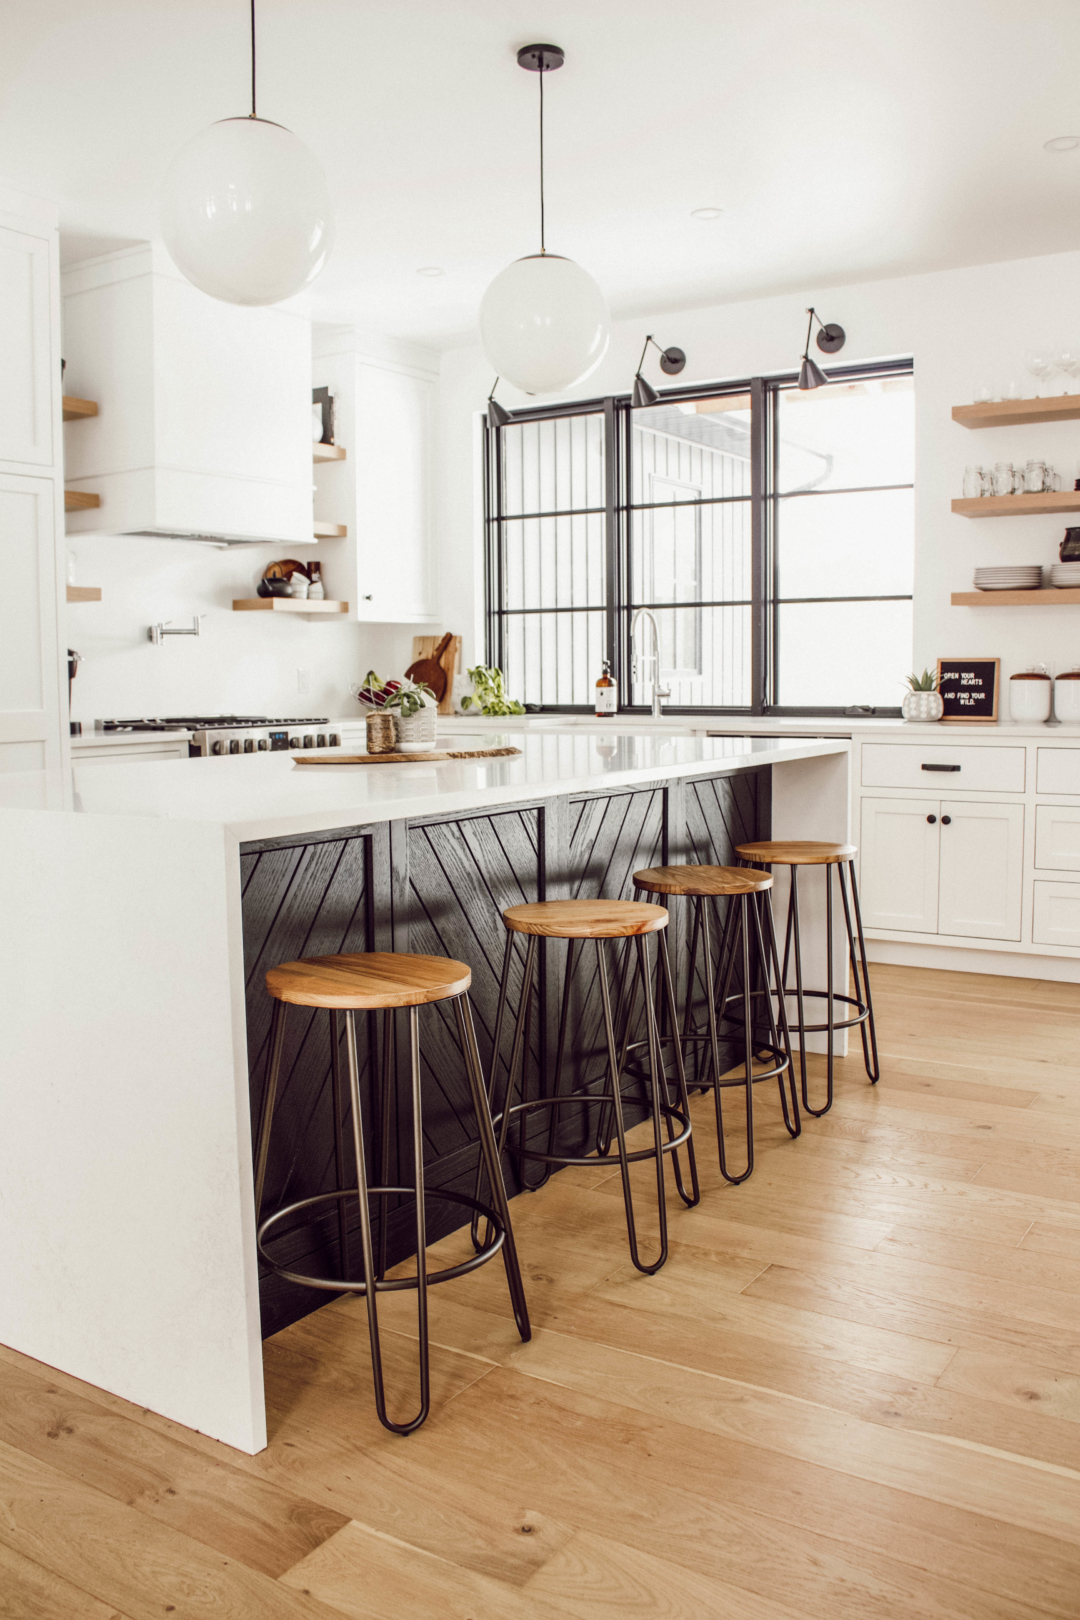 best seat in the kitchen new structube stools - M Kitchen